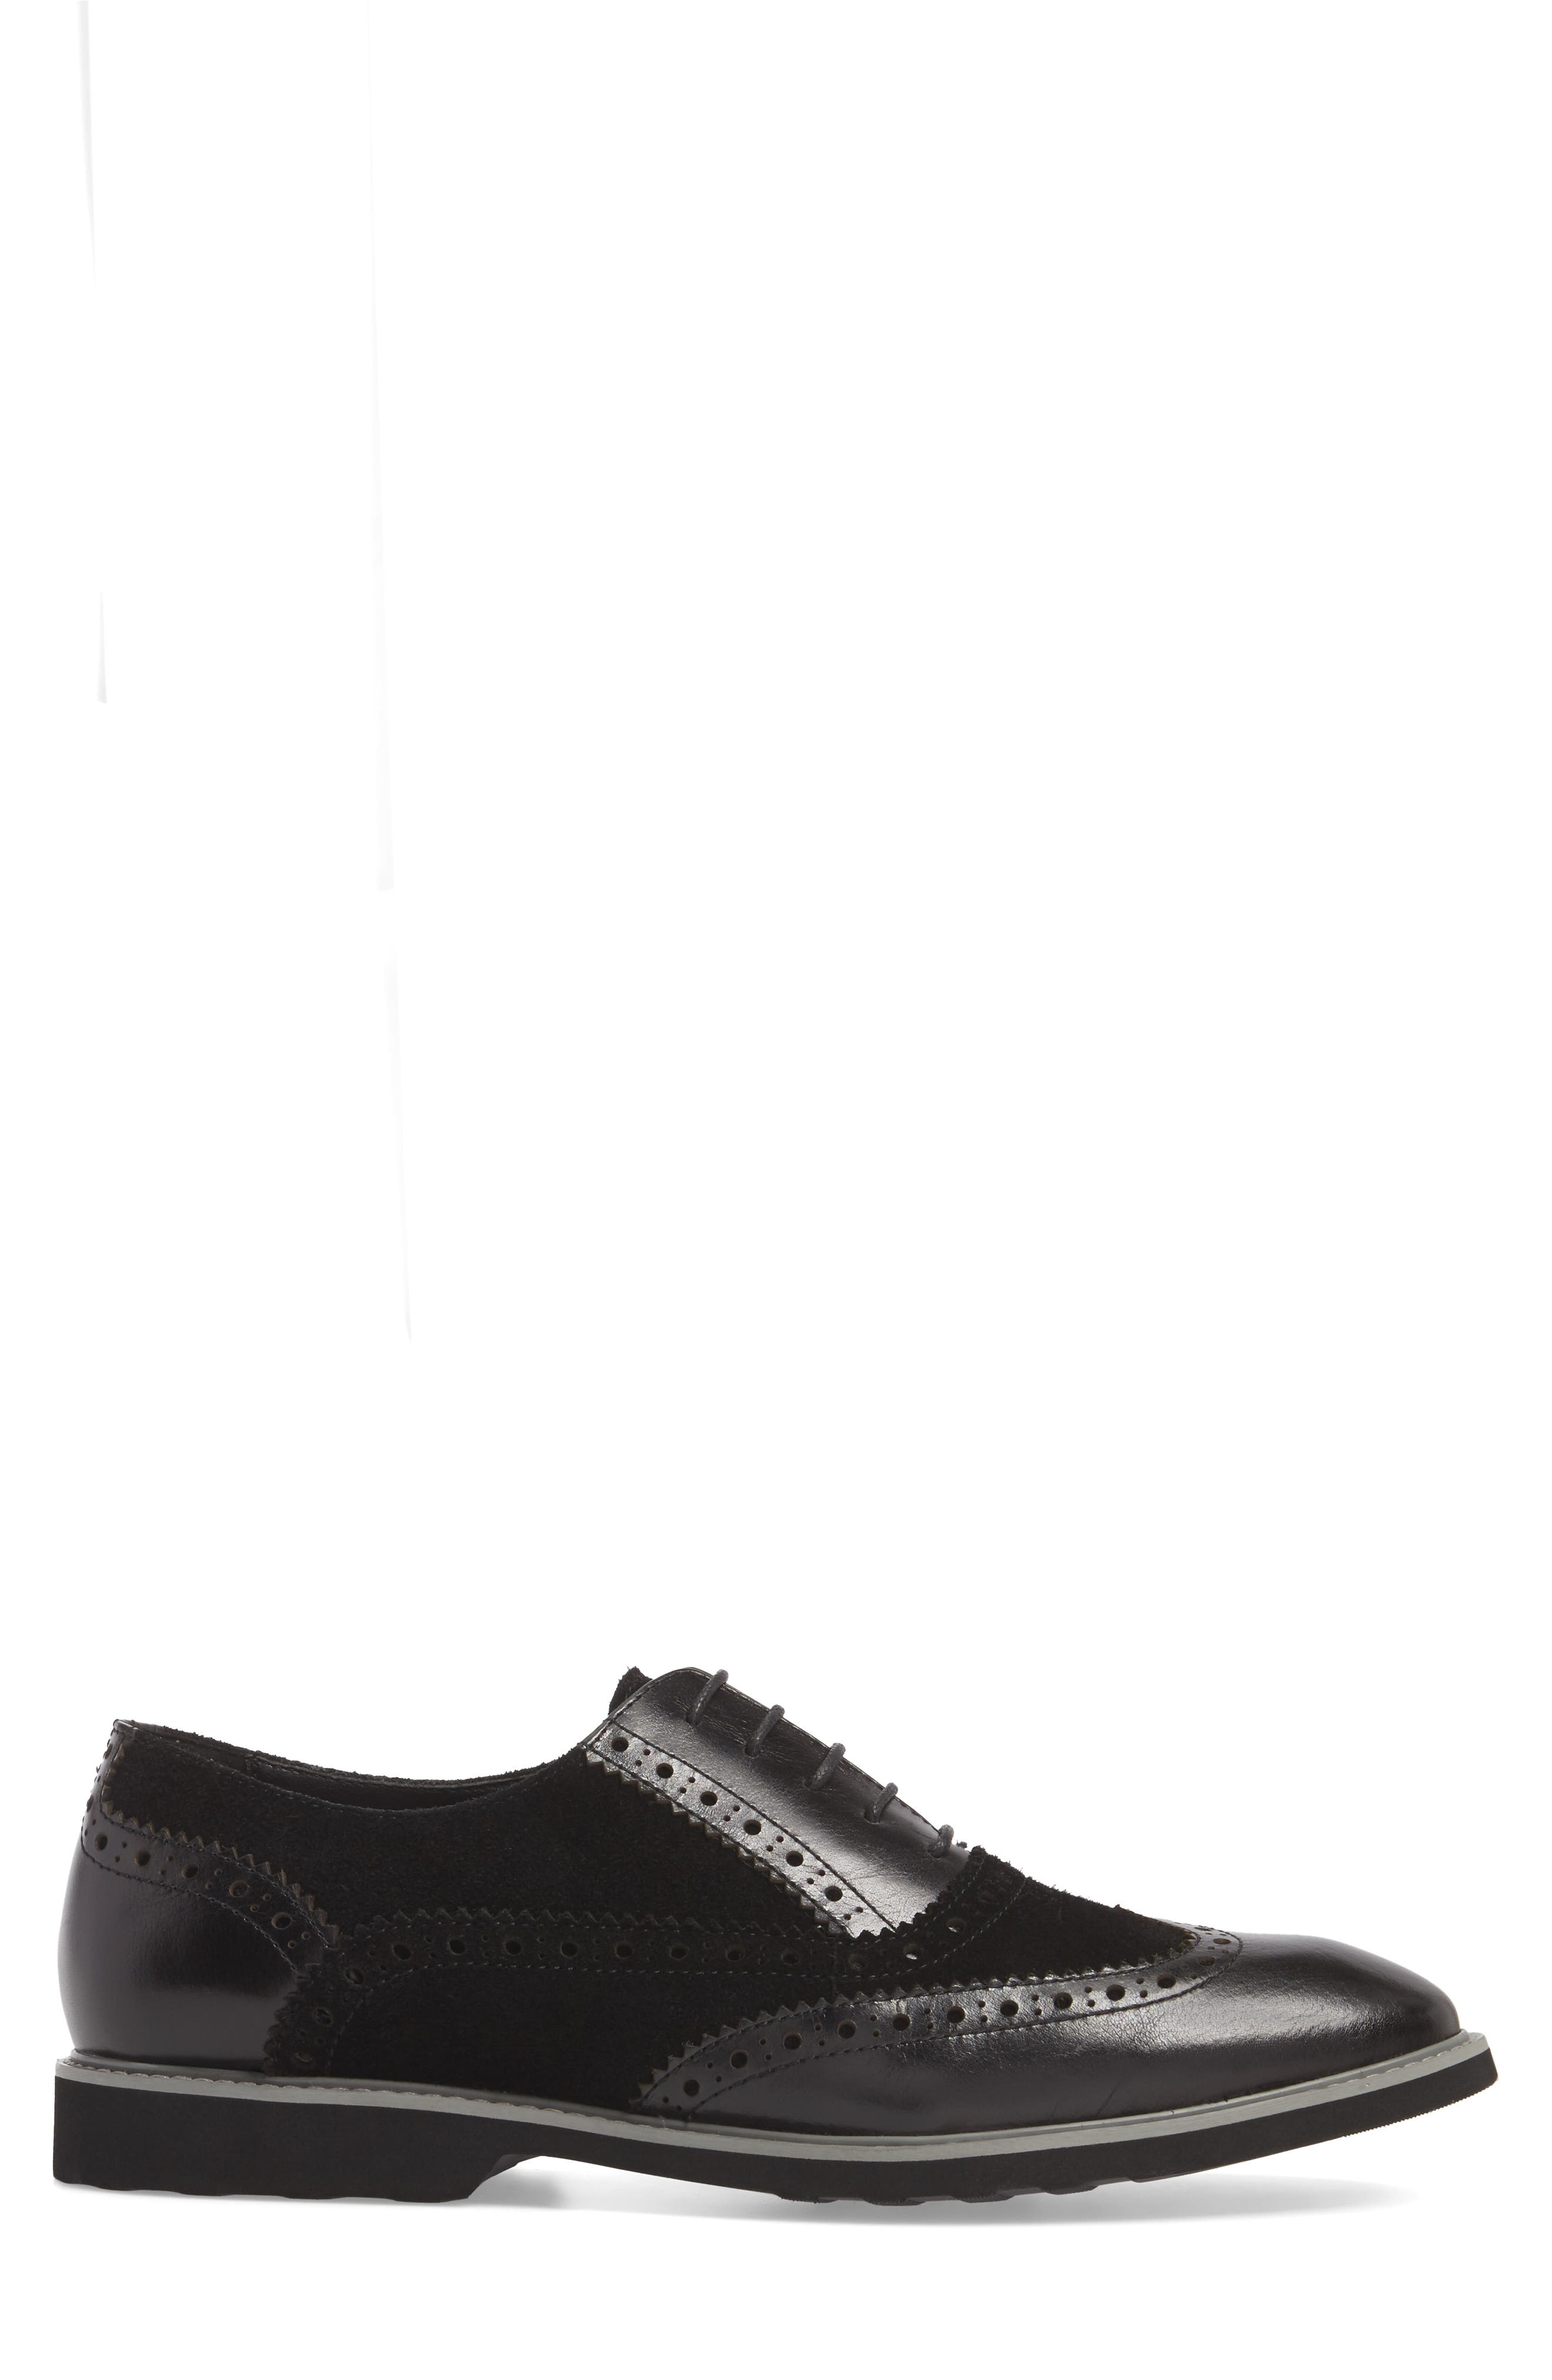 Chorley Wingtip Oxford,                             Alternate thumbnail 3, color,                             Black Leather/ Suede